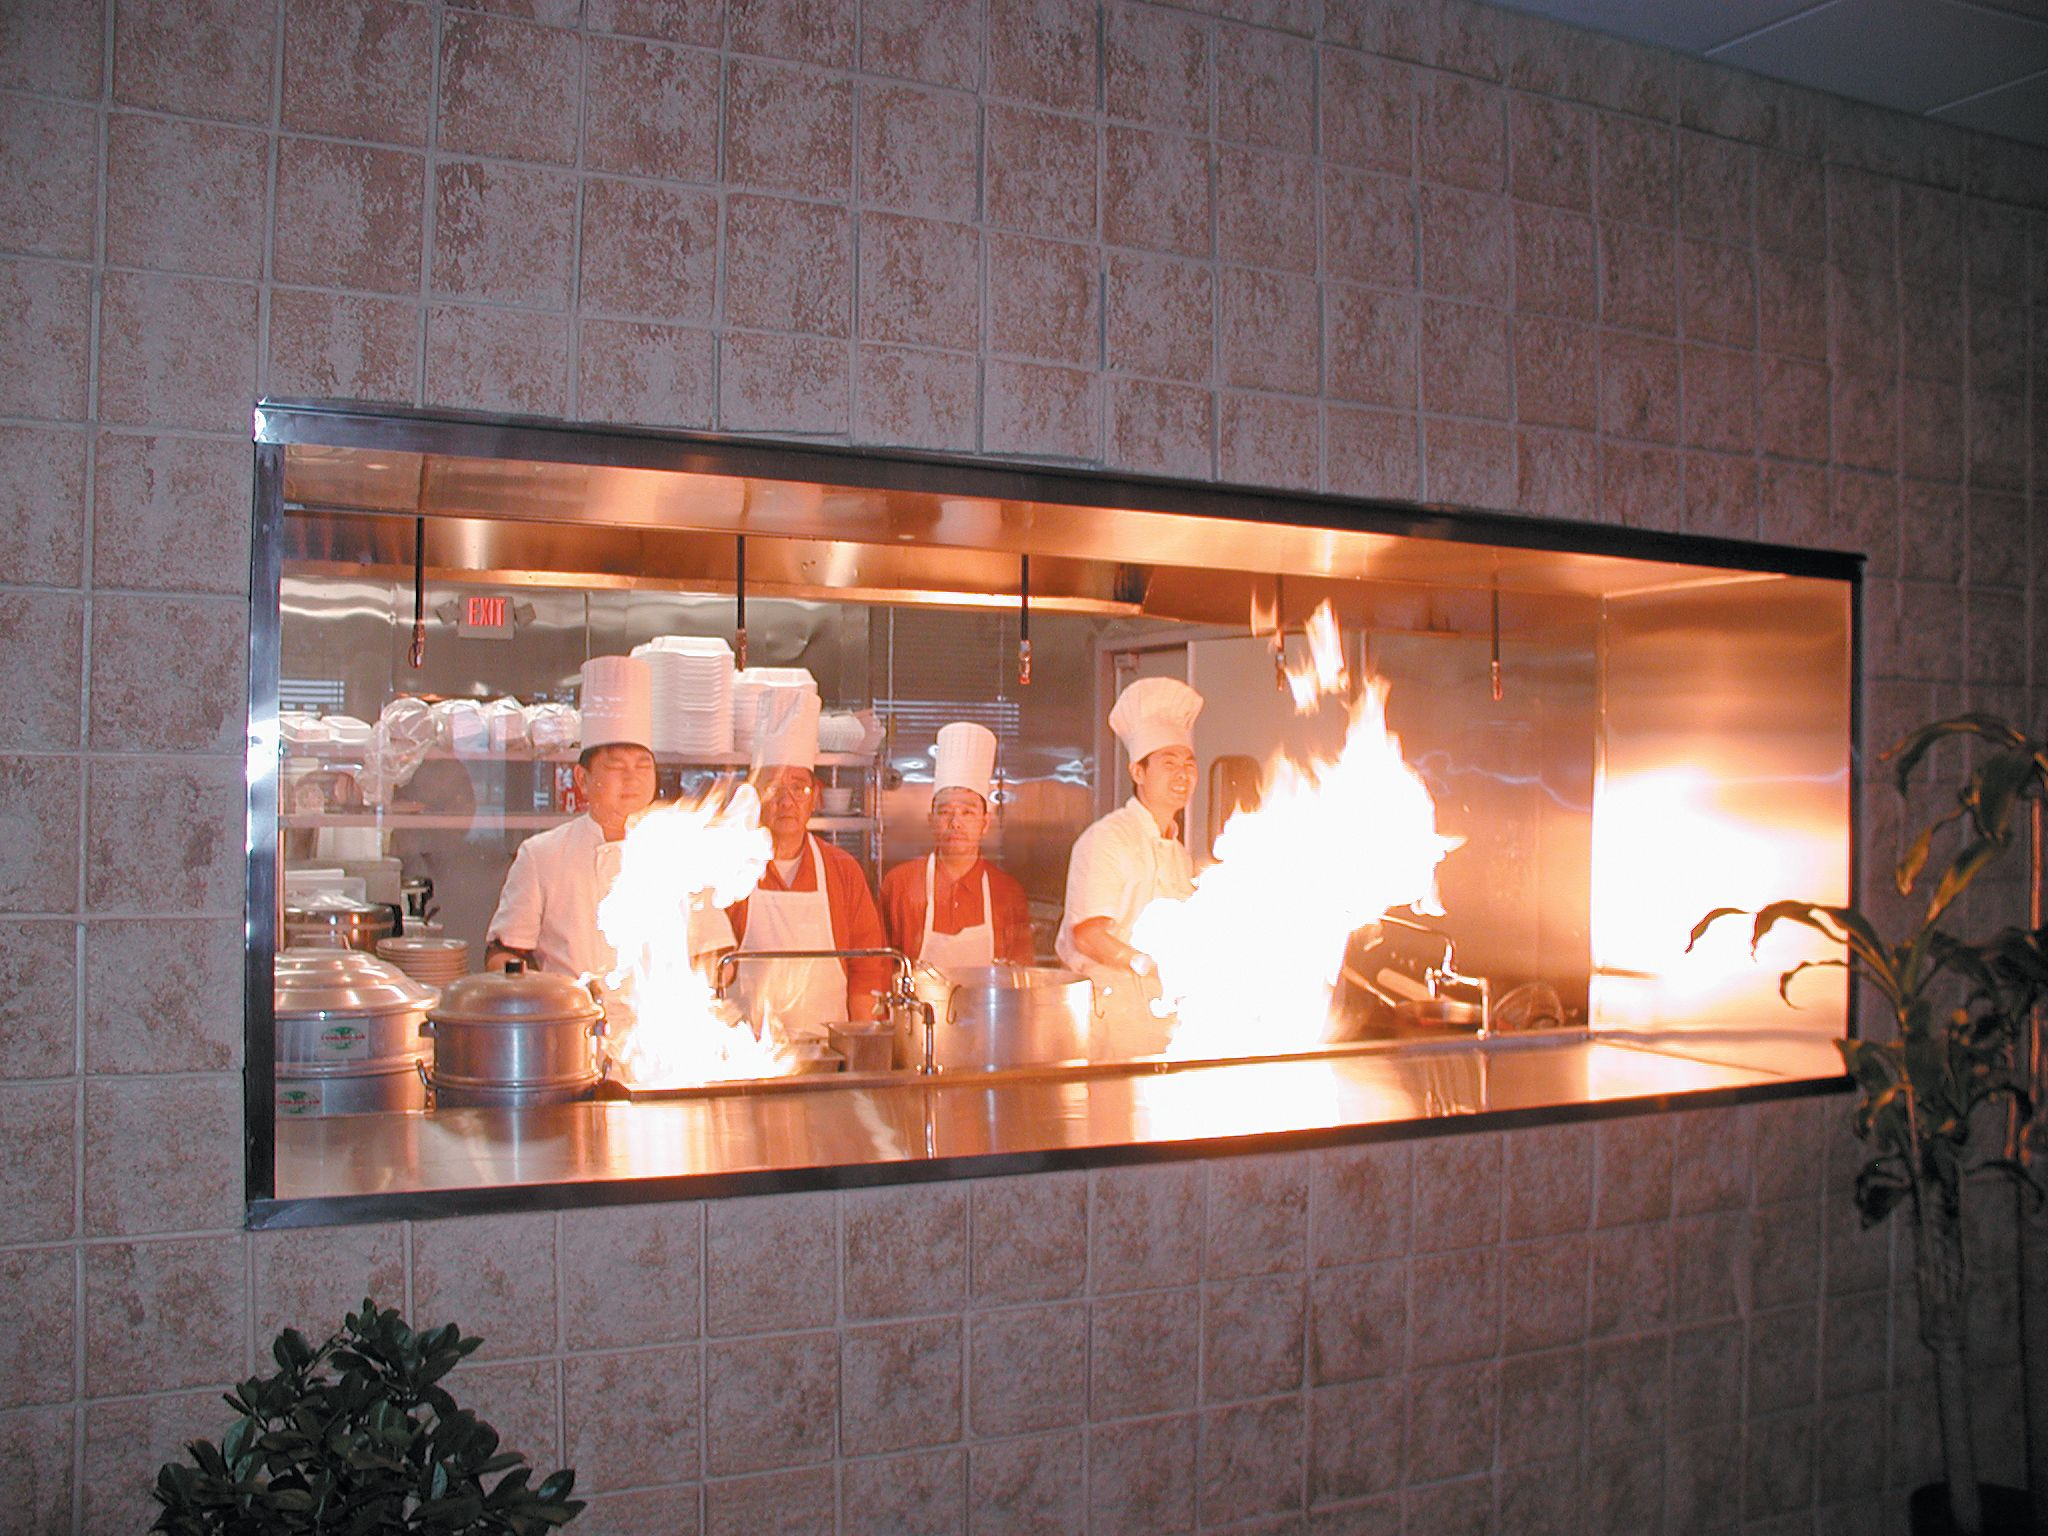 Restaurant Kitchen Wall Ing restaurant kitchen window - google search | kitchen layout